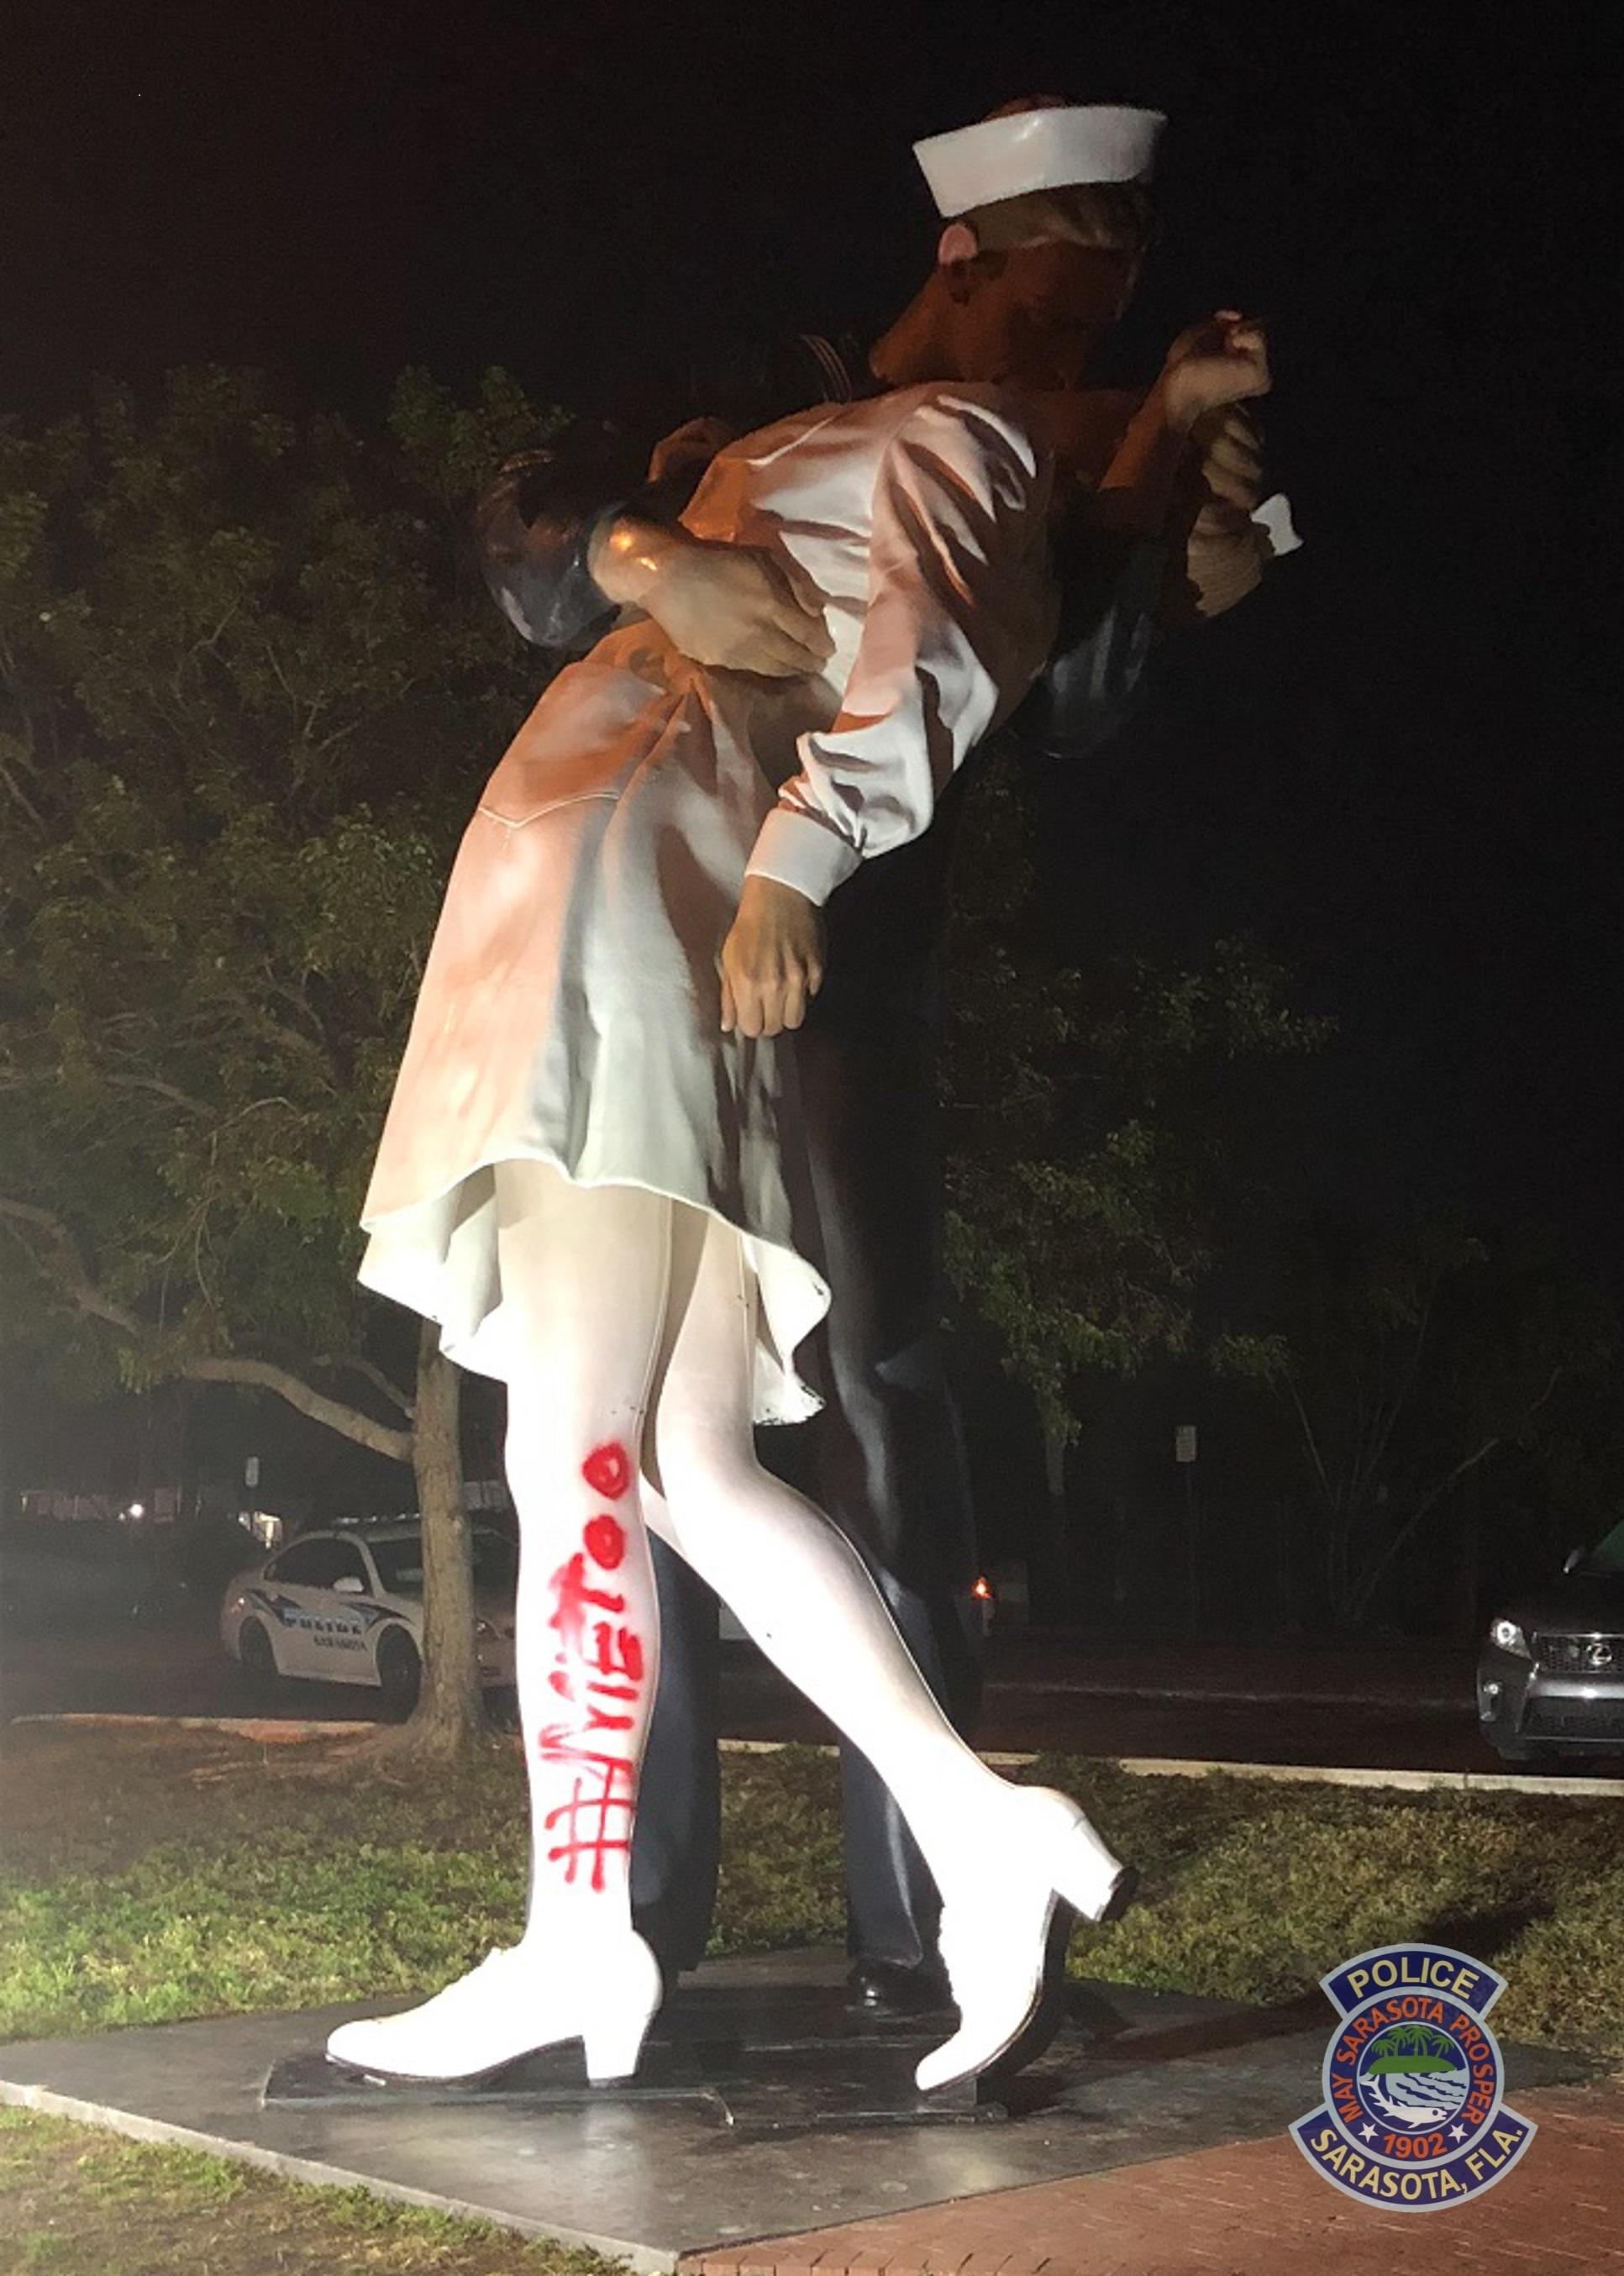 #MeToo Graffiti Scrubbed From Sarasota V-J Day Kissing Statue